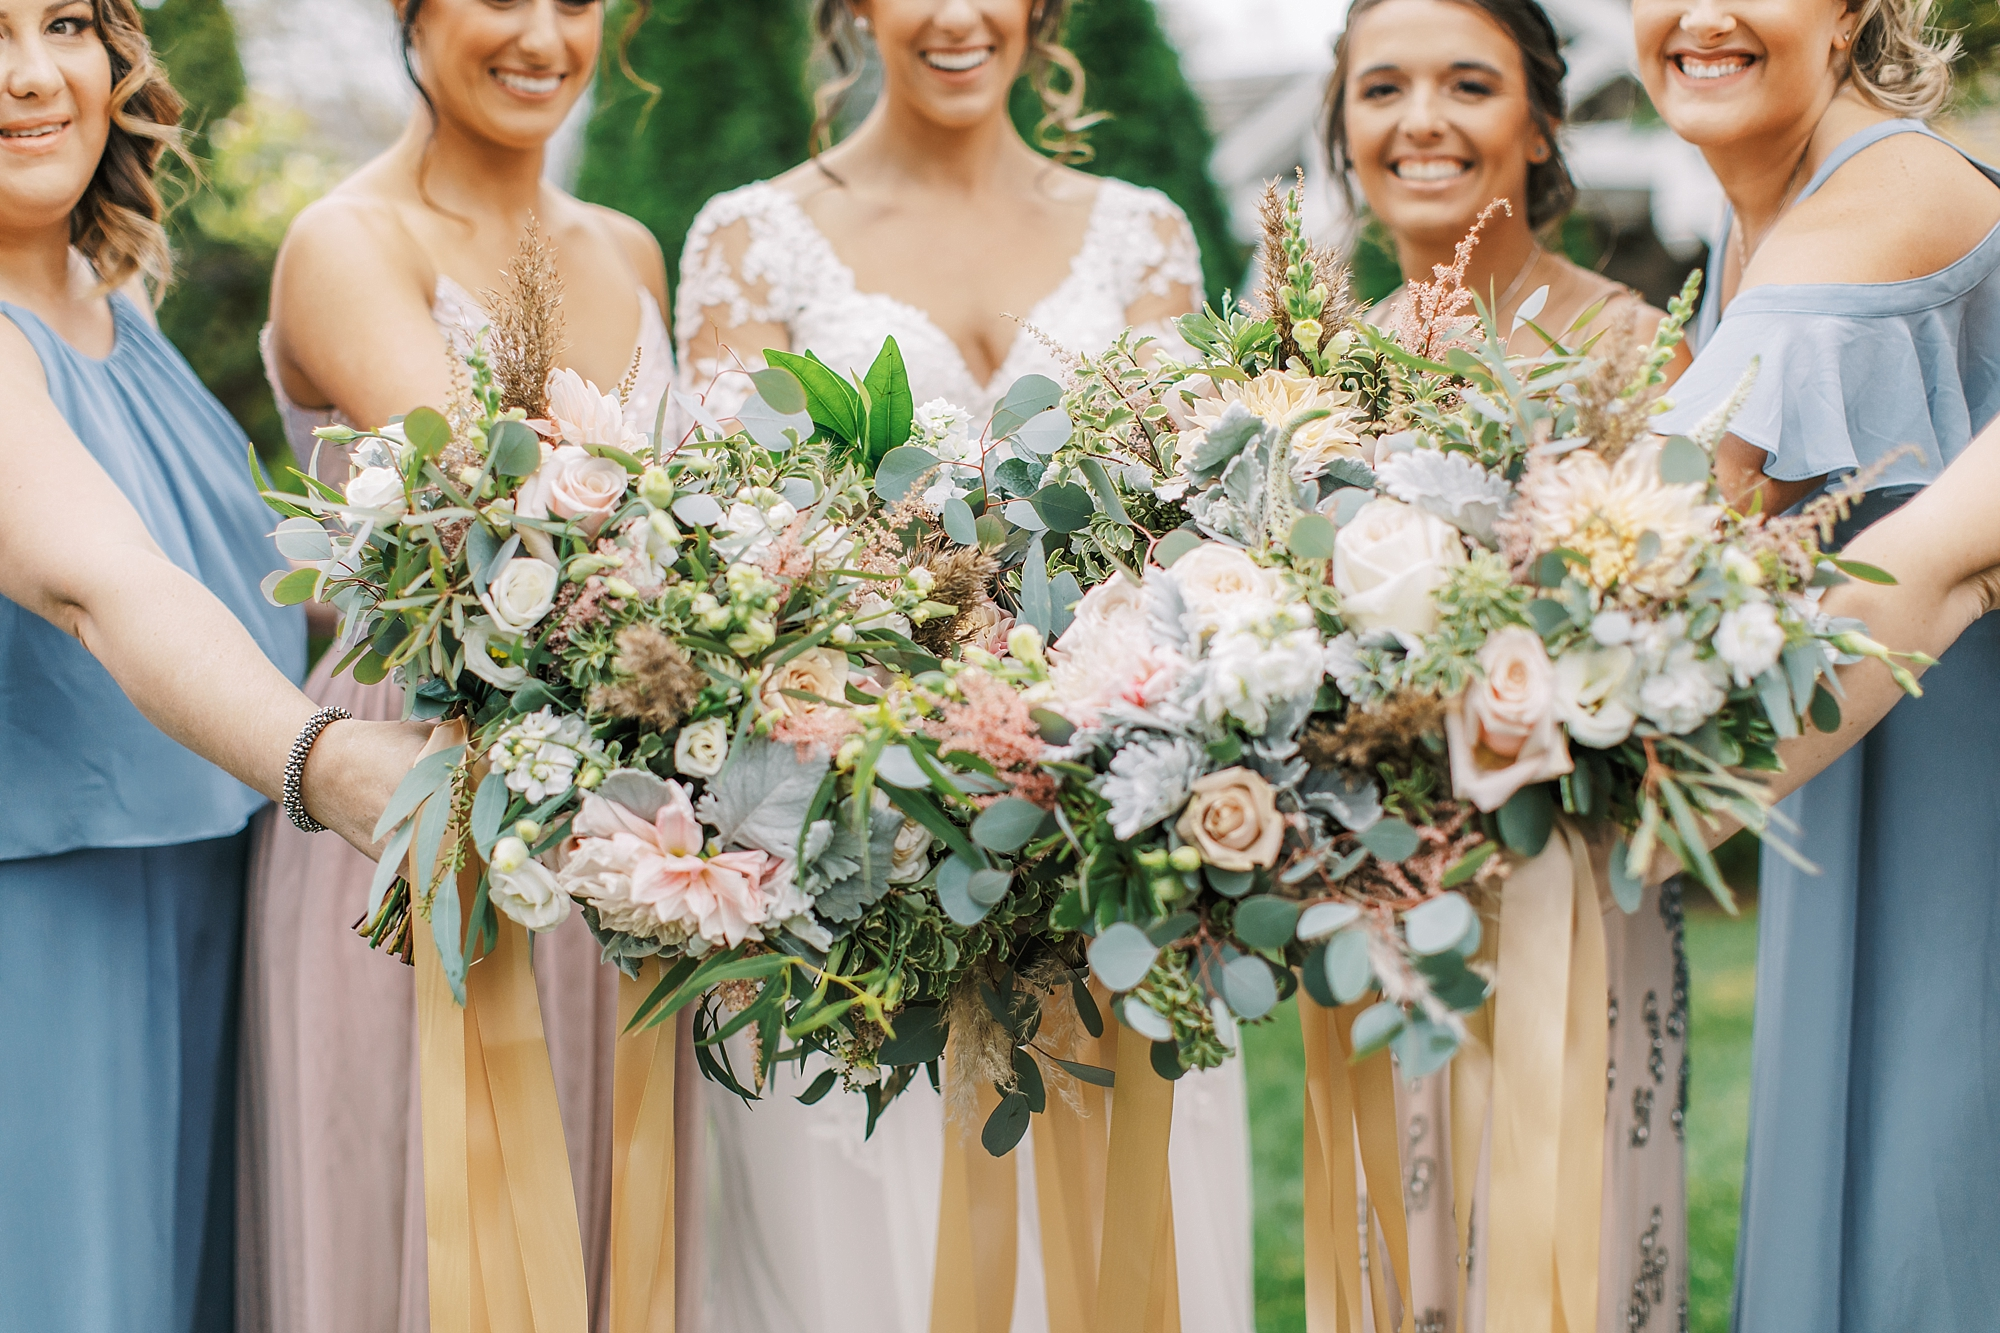 Sweet Garden Wedding Photography Abbie Holmes Estate in Cape May NJ by Magdalena Studios 0028